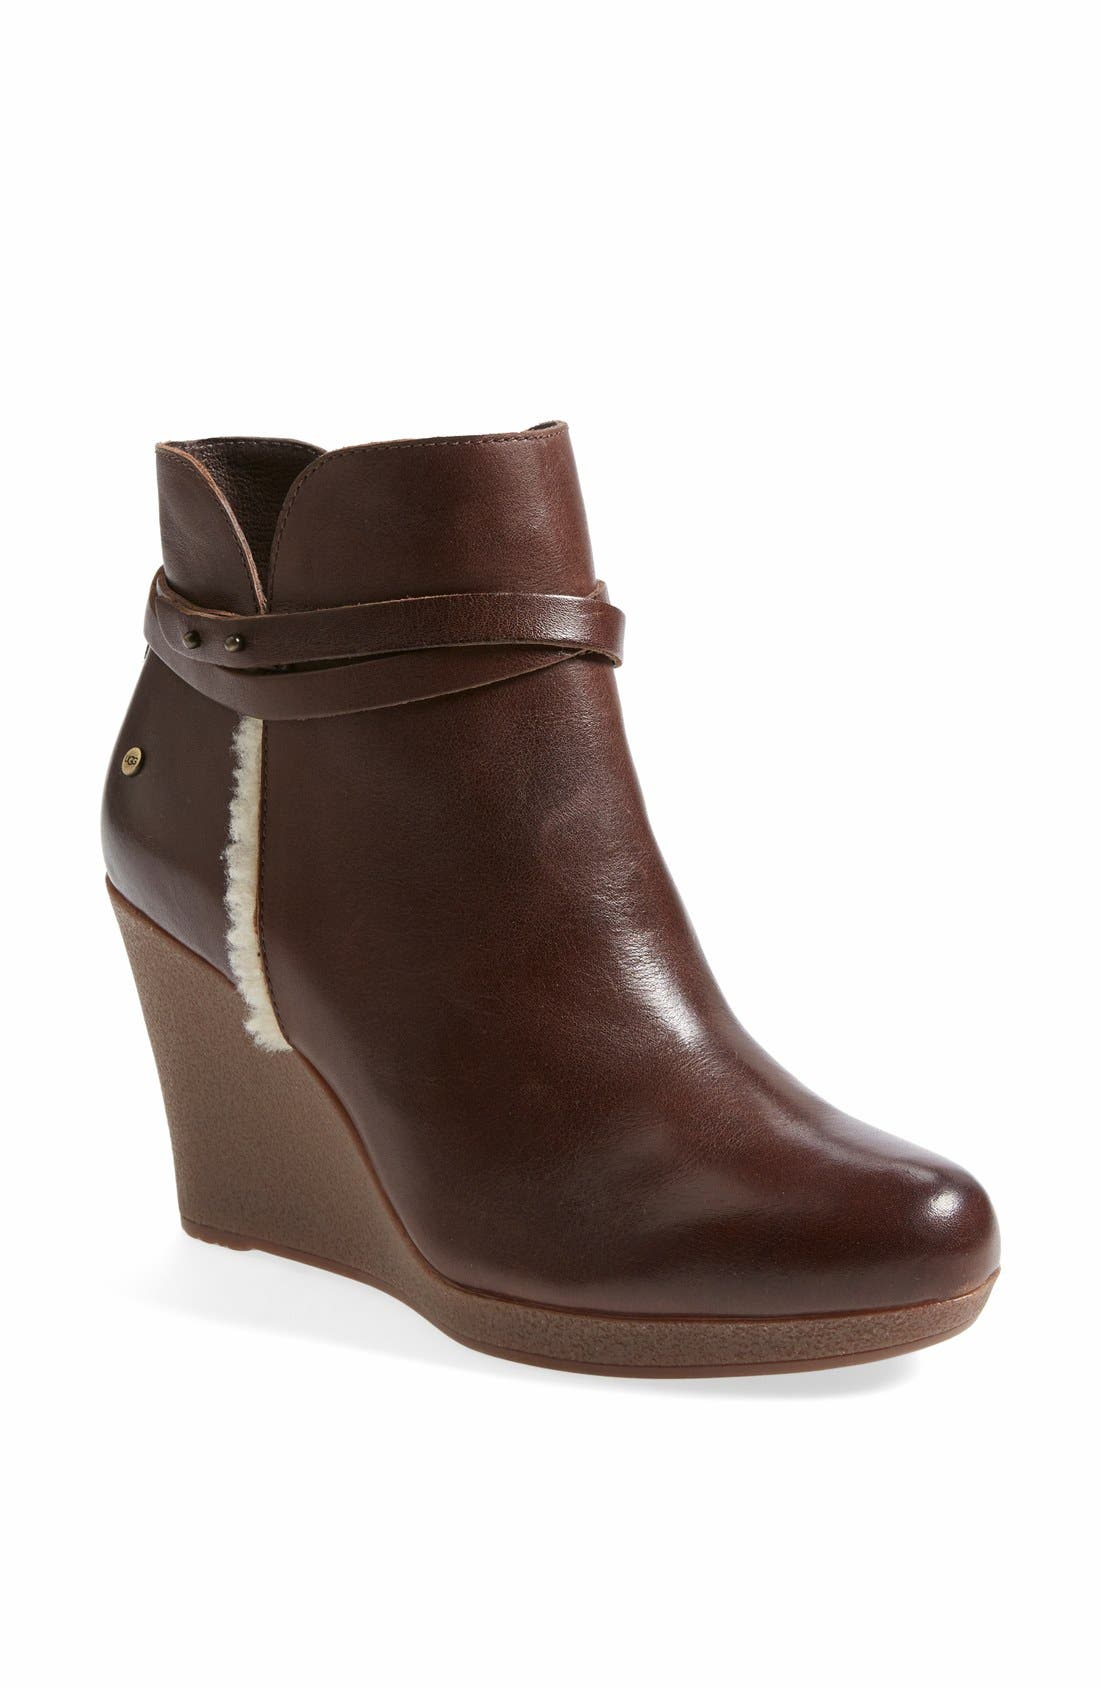 Australia 'Alexandra' Water Resistant Wedge Bootie,                         Main,                         color, Stout